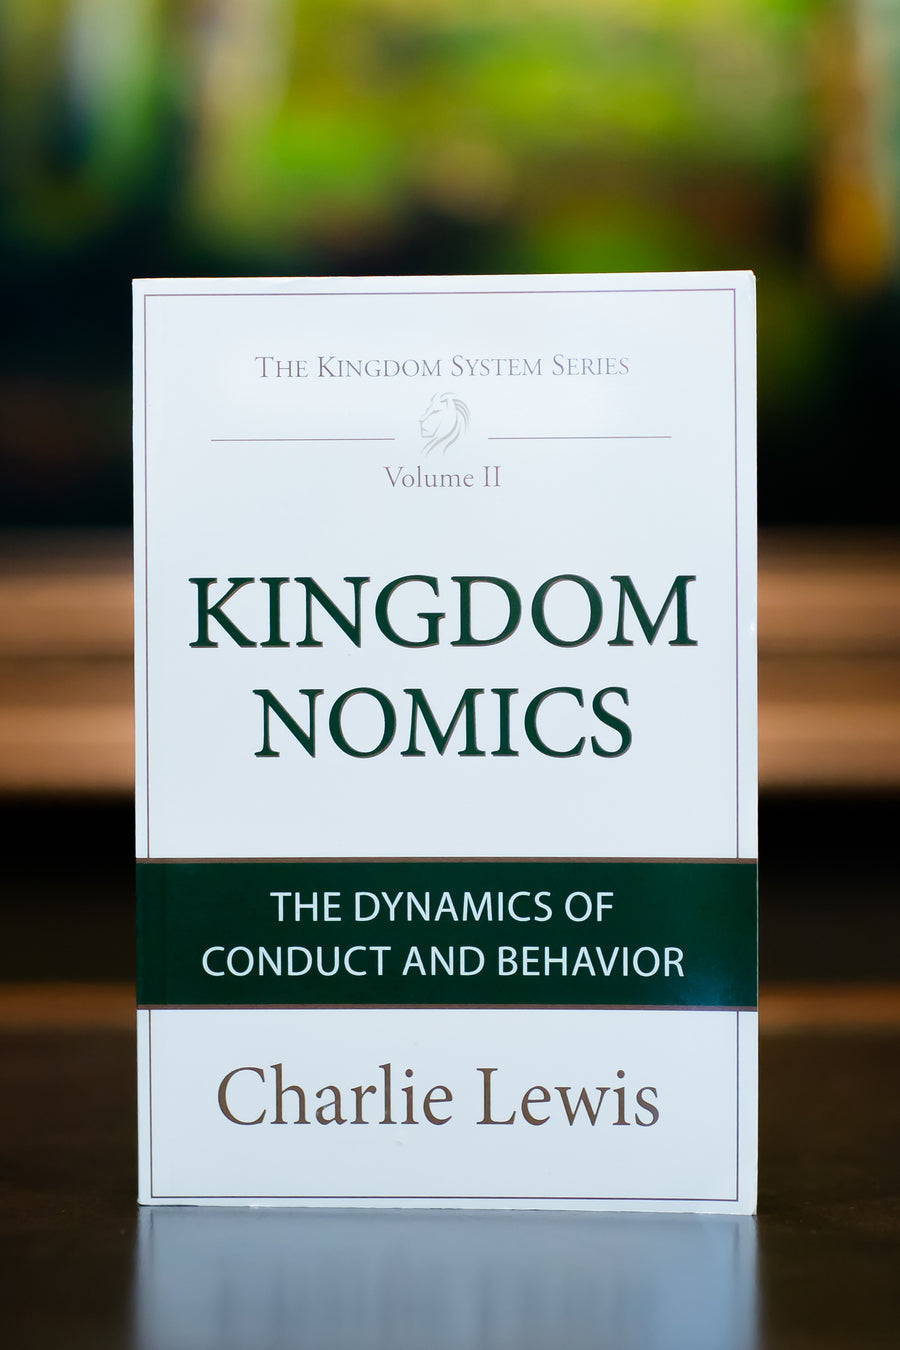 Kingdomnomics: The Dynamics of Conduct and Behavior by Charlie Lewis